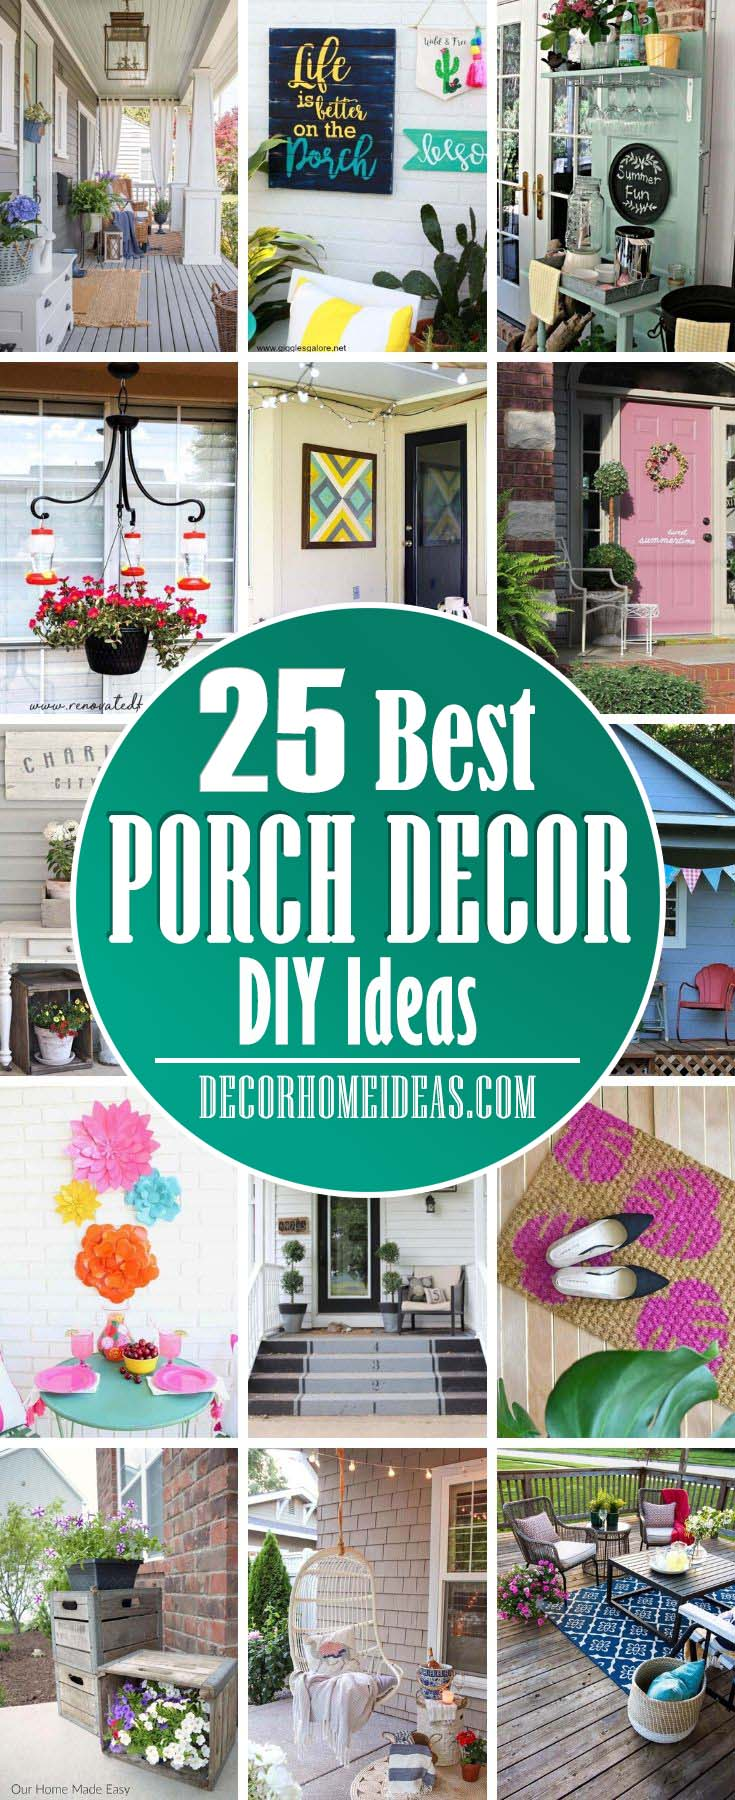 Best DIY Porch Decor Ideas. Spruce up your front porch with these beautiful decor ideas. Swing bed, planter, rug or flower pot could add more more color and texture. #diy #porch #decor #decorhomeideas